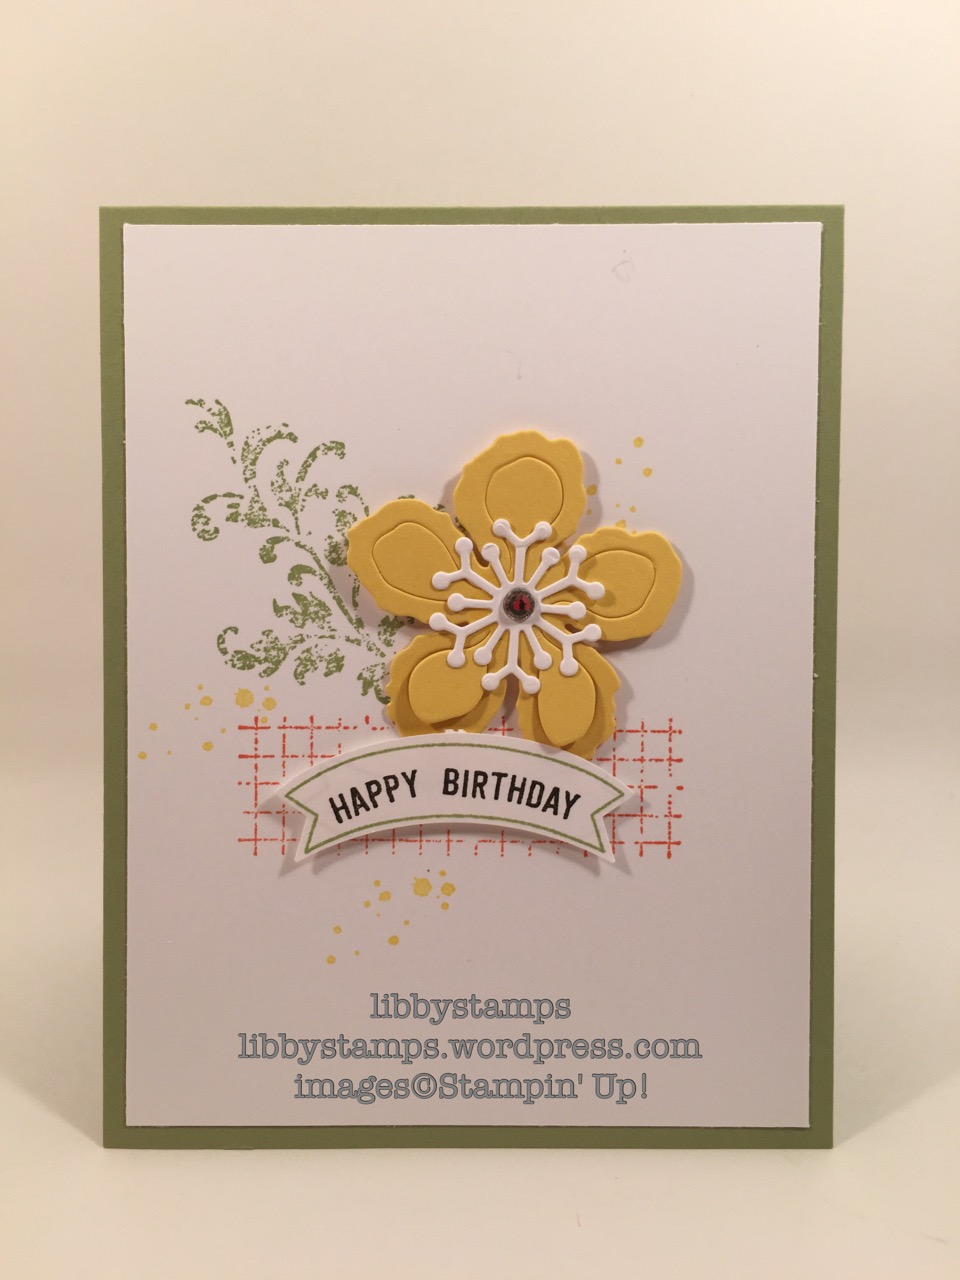 libbystamps, stampin up, Timeless Textures, Thoughtful Banners, Botanical Builder Framelits, Duet Punch, Stepped Up Sunday